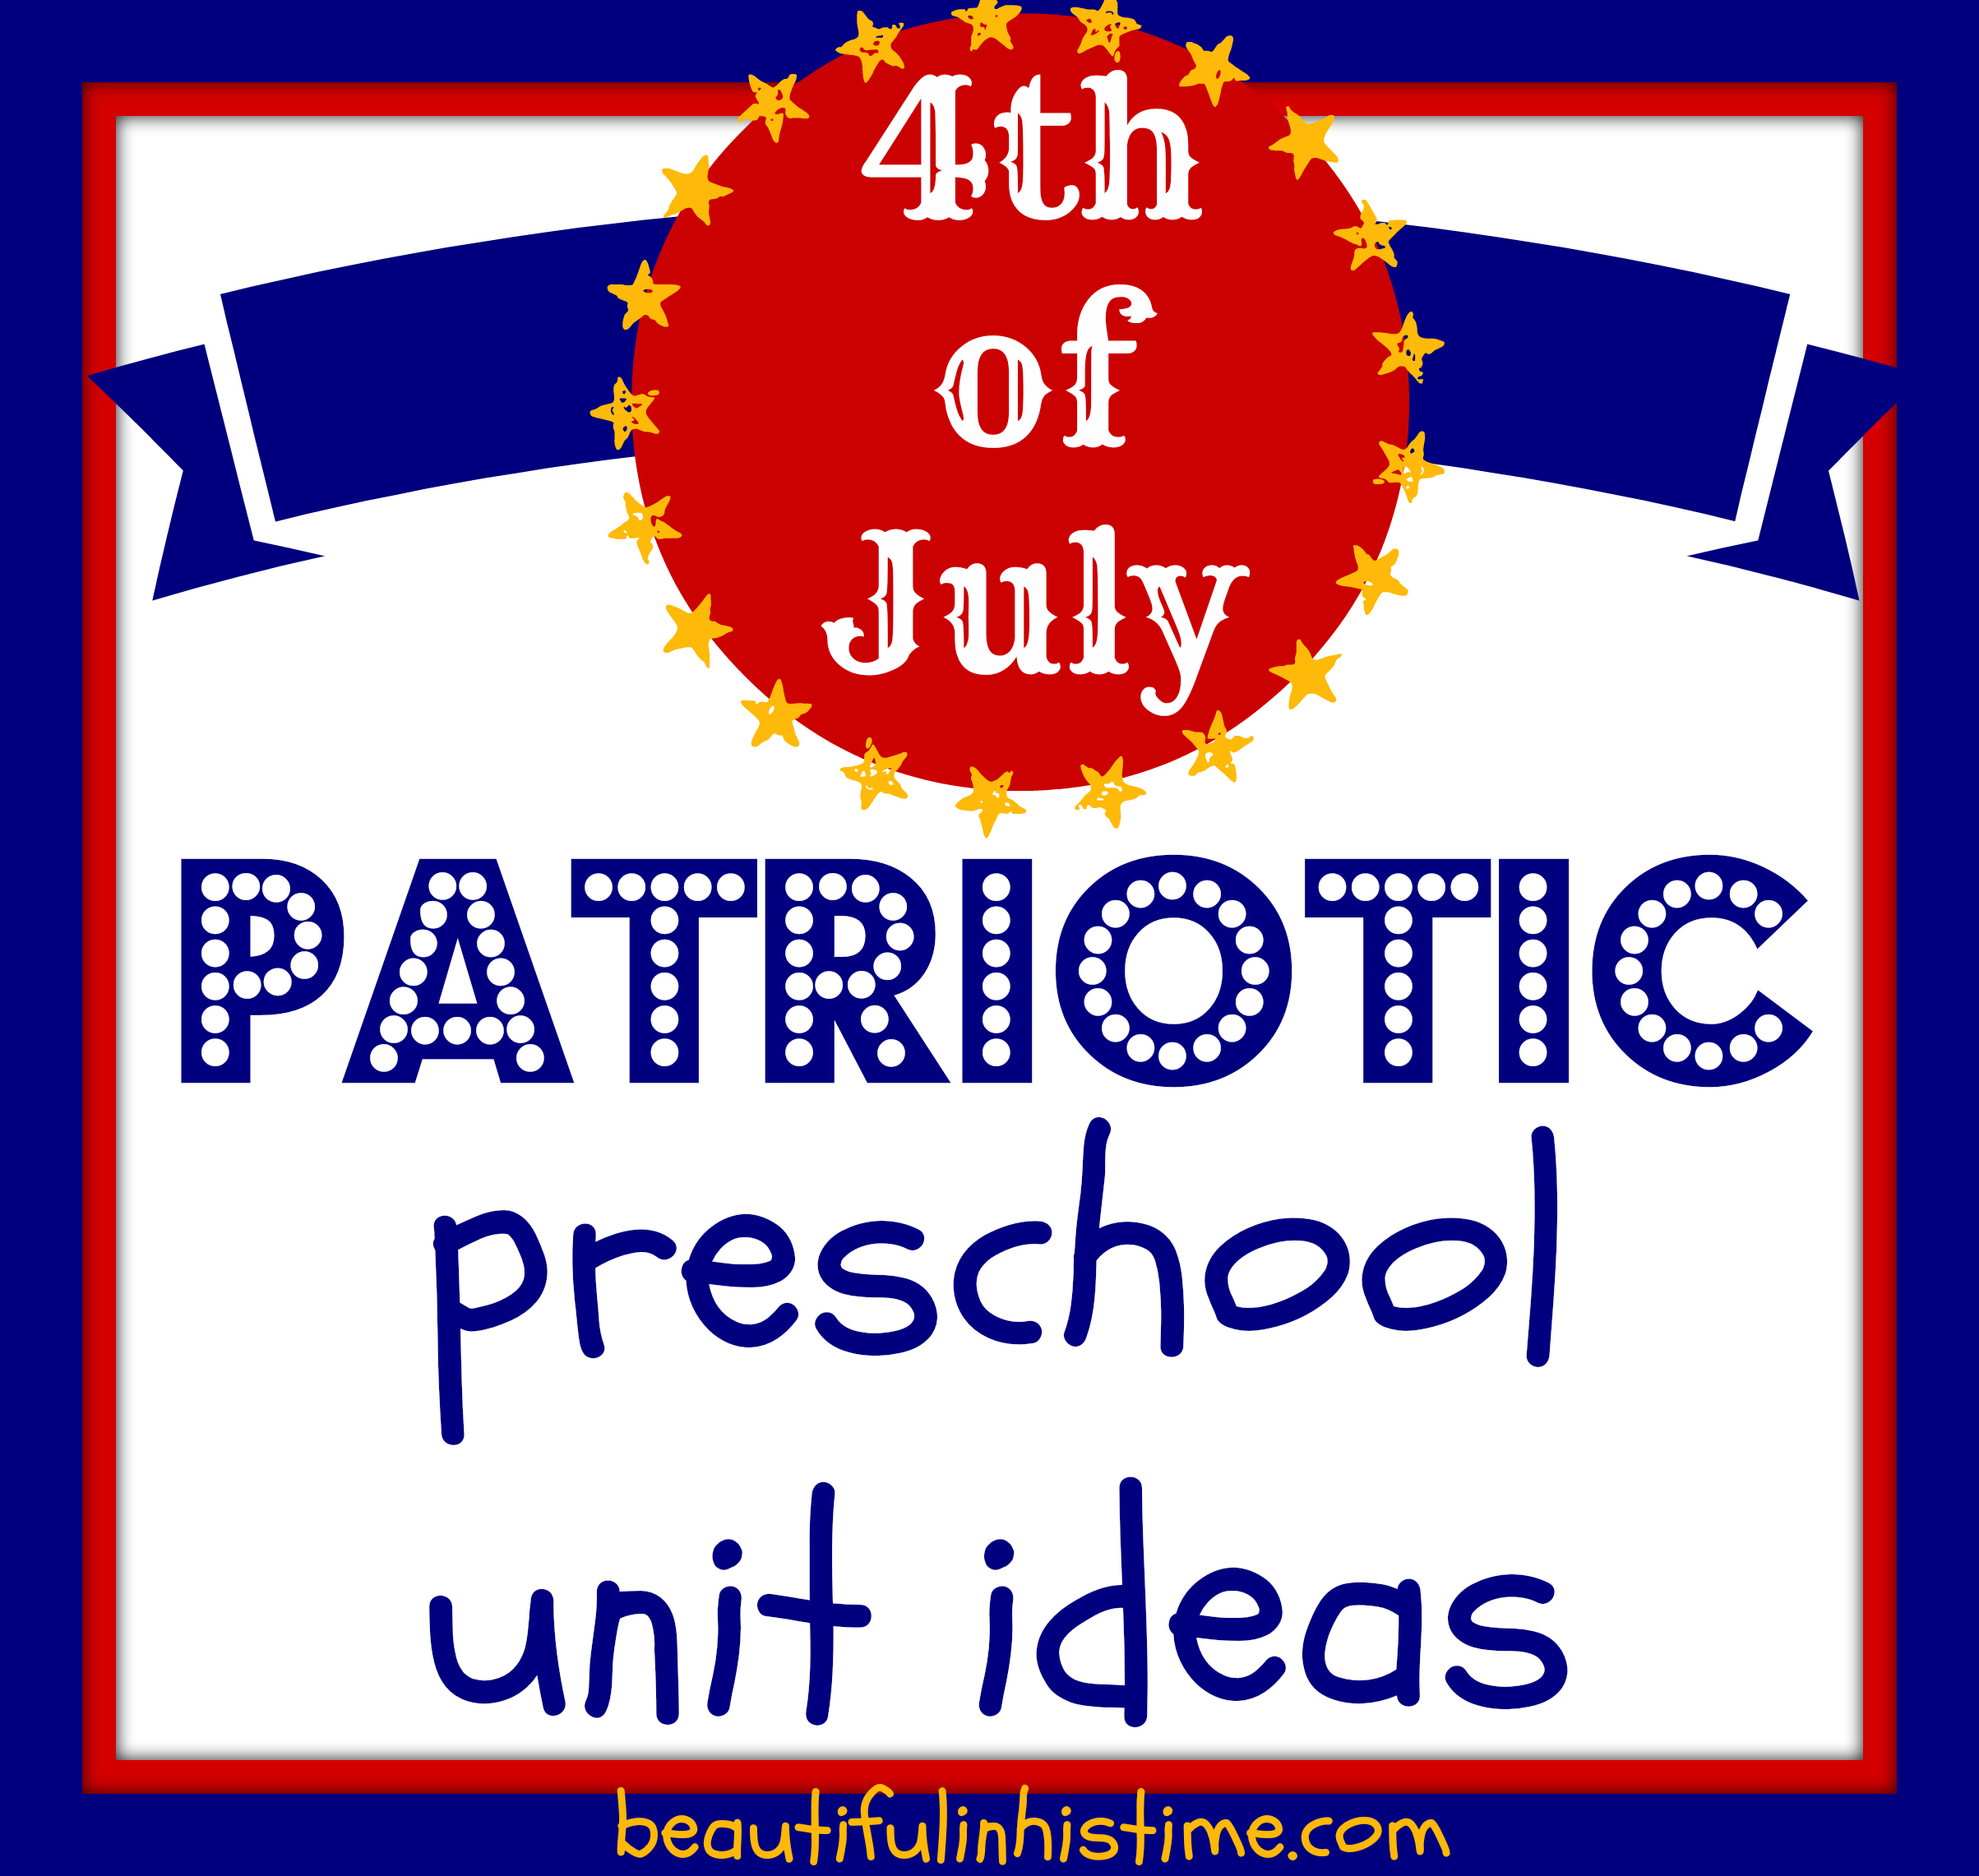 May The 4th Be With You Lesson Plans: Patriotic Preschool Unit Ideas And Resources For The 4th